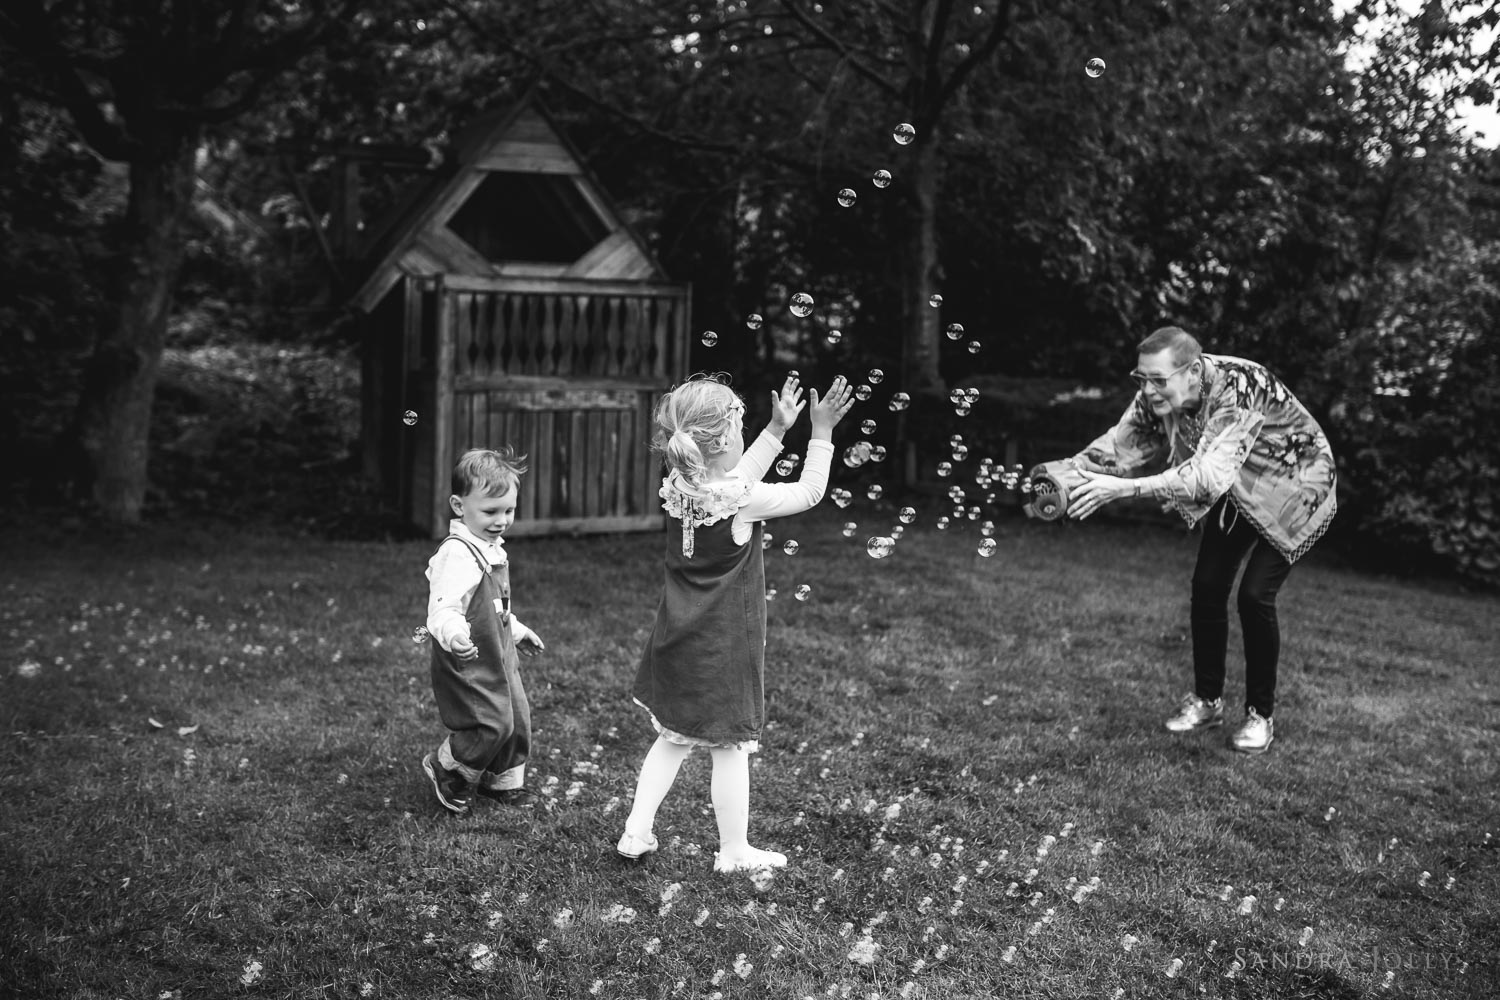 grandma-playing-with-grandchildren-by-täby-fotograf-sandra-jolly.jpg